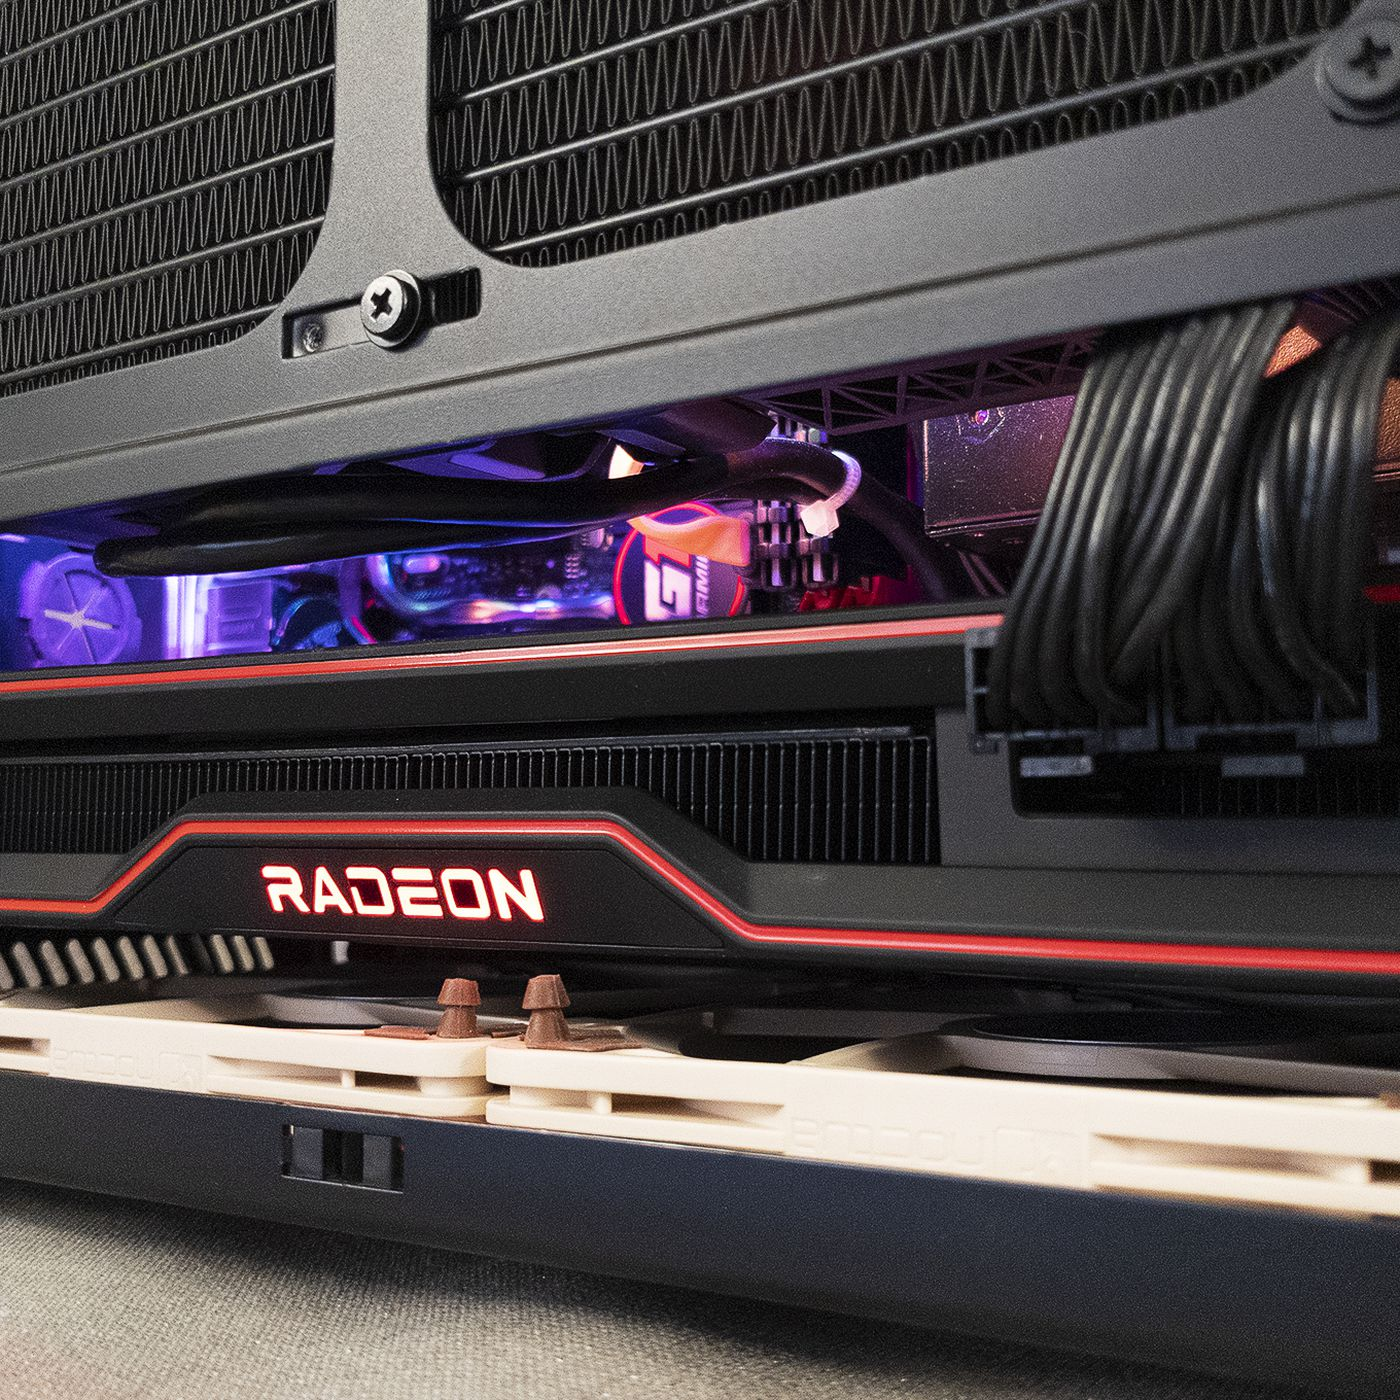 theverge.com - Sean Hollister - Raise your hand if a gaming PC is currently heating your home